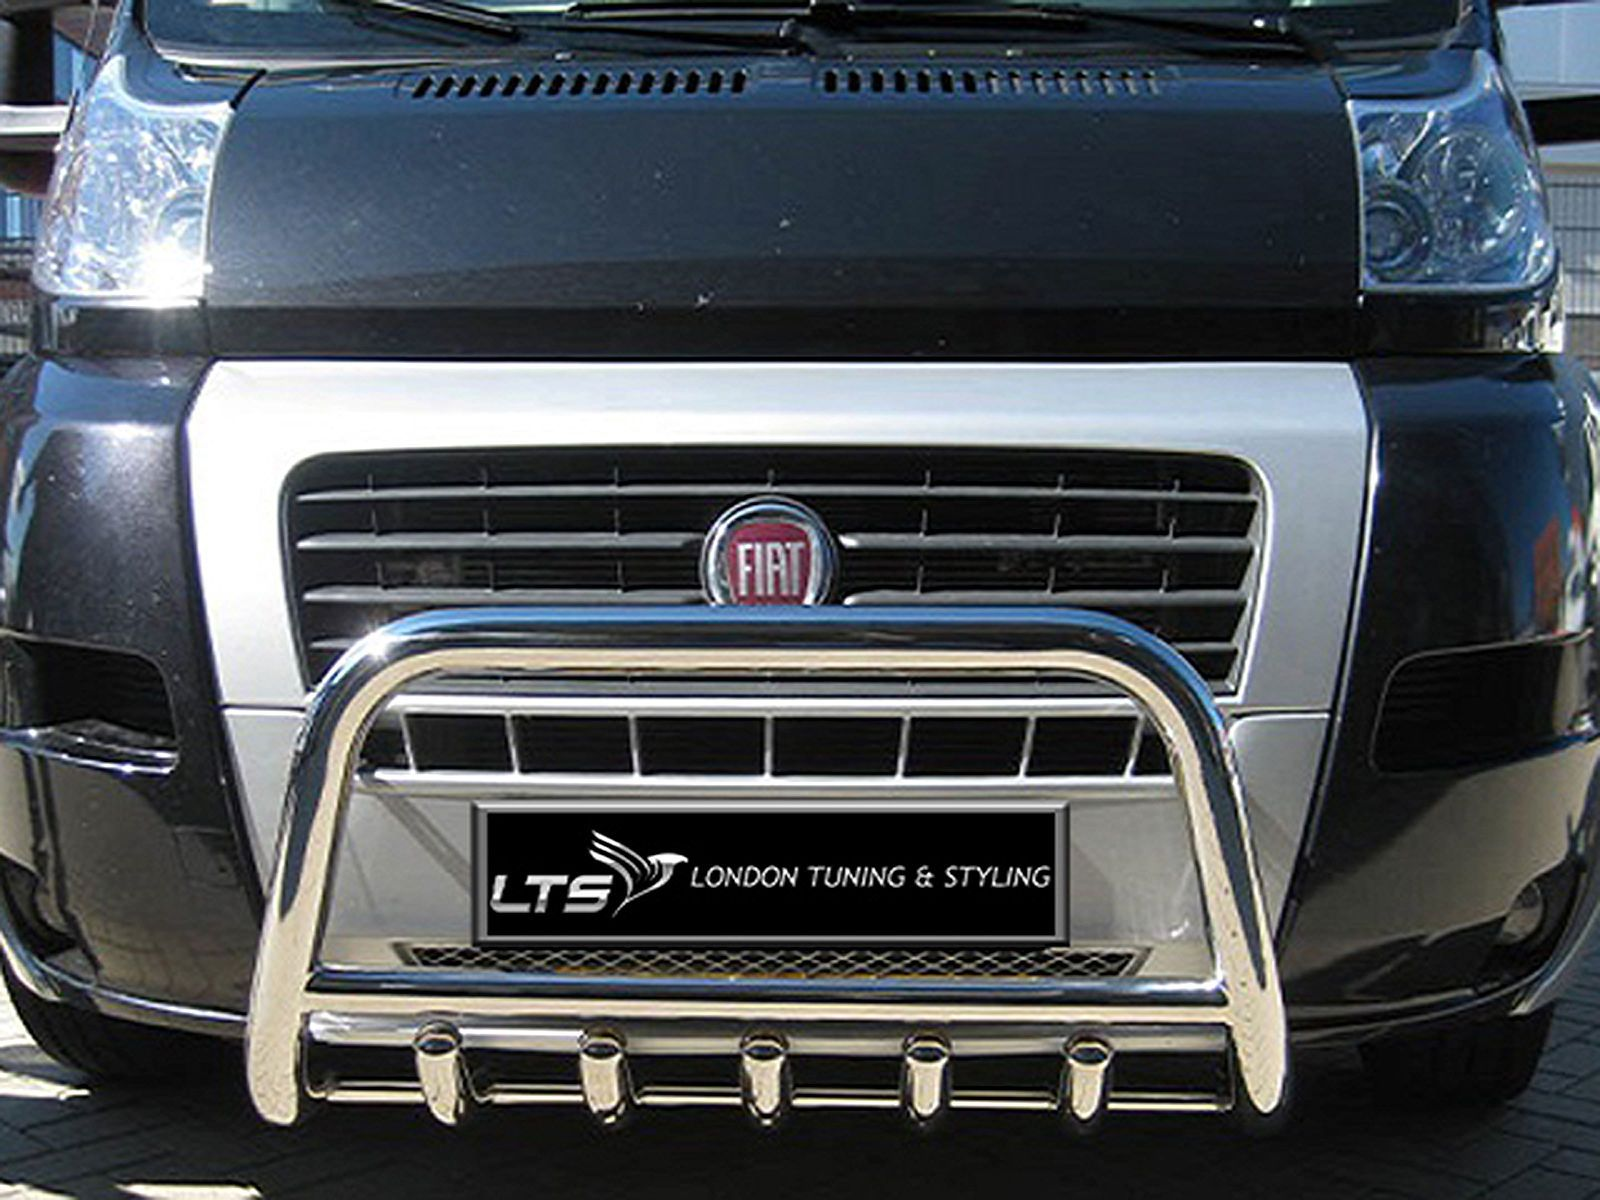 Fiat Ducato Stainless Steel Chrome Nudge A Bar Bull Bar 2006 2013 Ebay Fiat Ducato Fiat Bull Bar